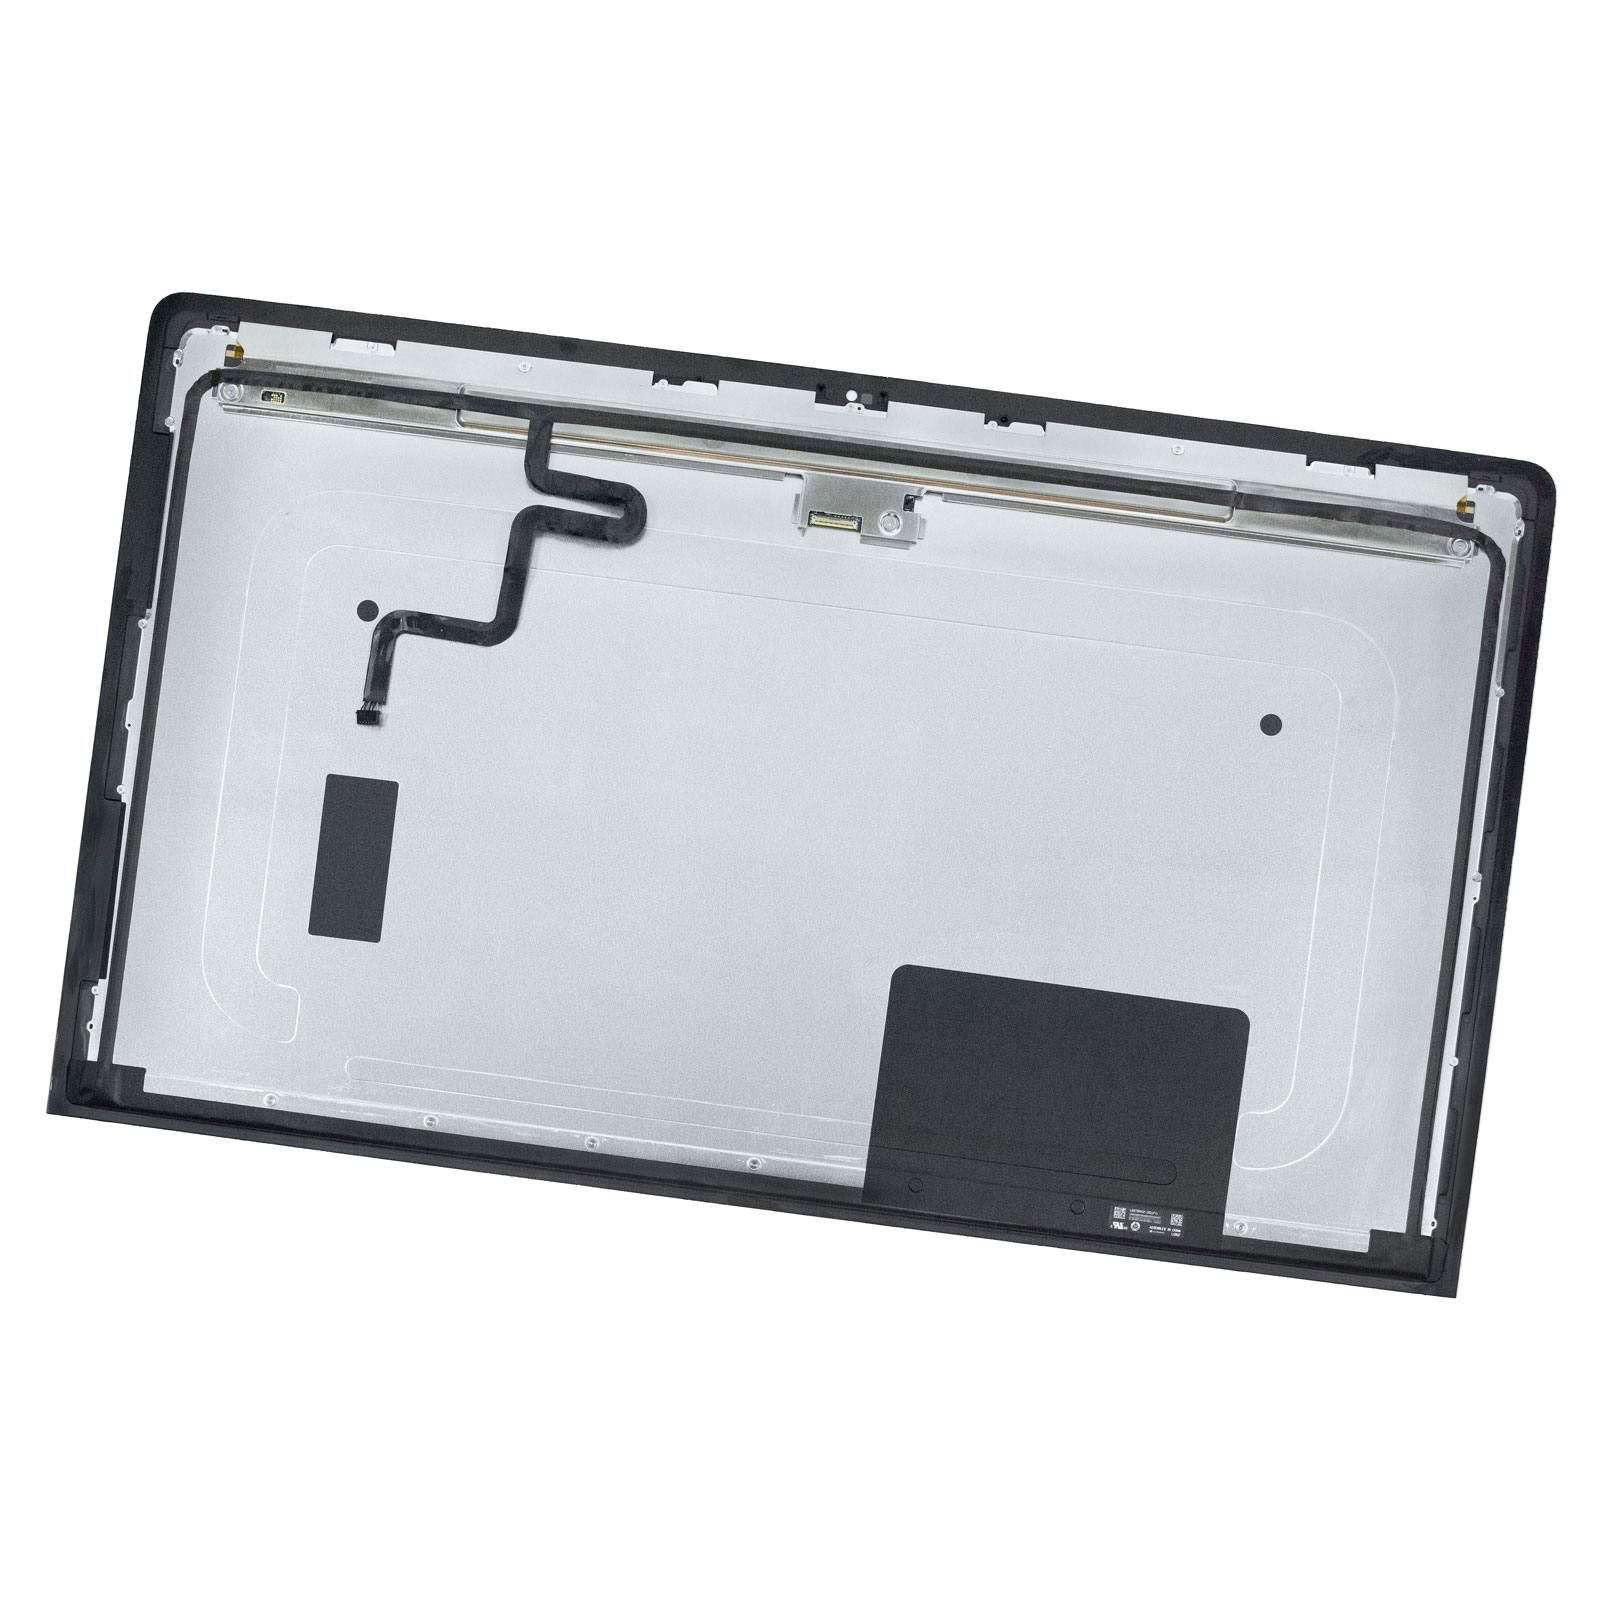 661-7885 Apple LCD Display for iMac 27 inch Late 2013 A1419